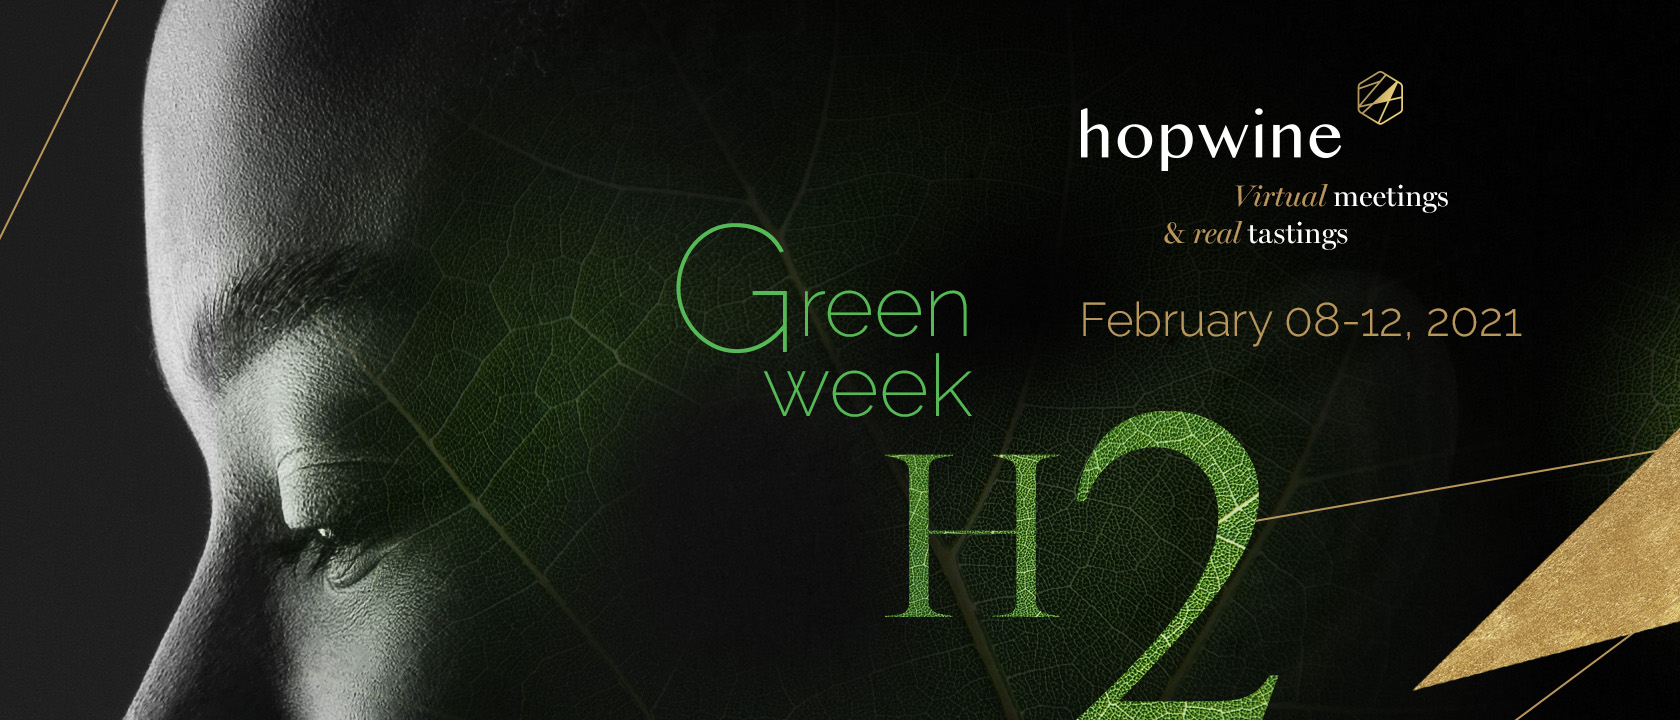 Hopwine H2 - Green week - Wines and spirits committed to a sustainable approach